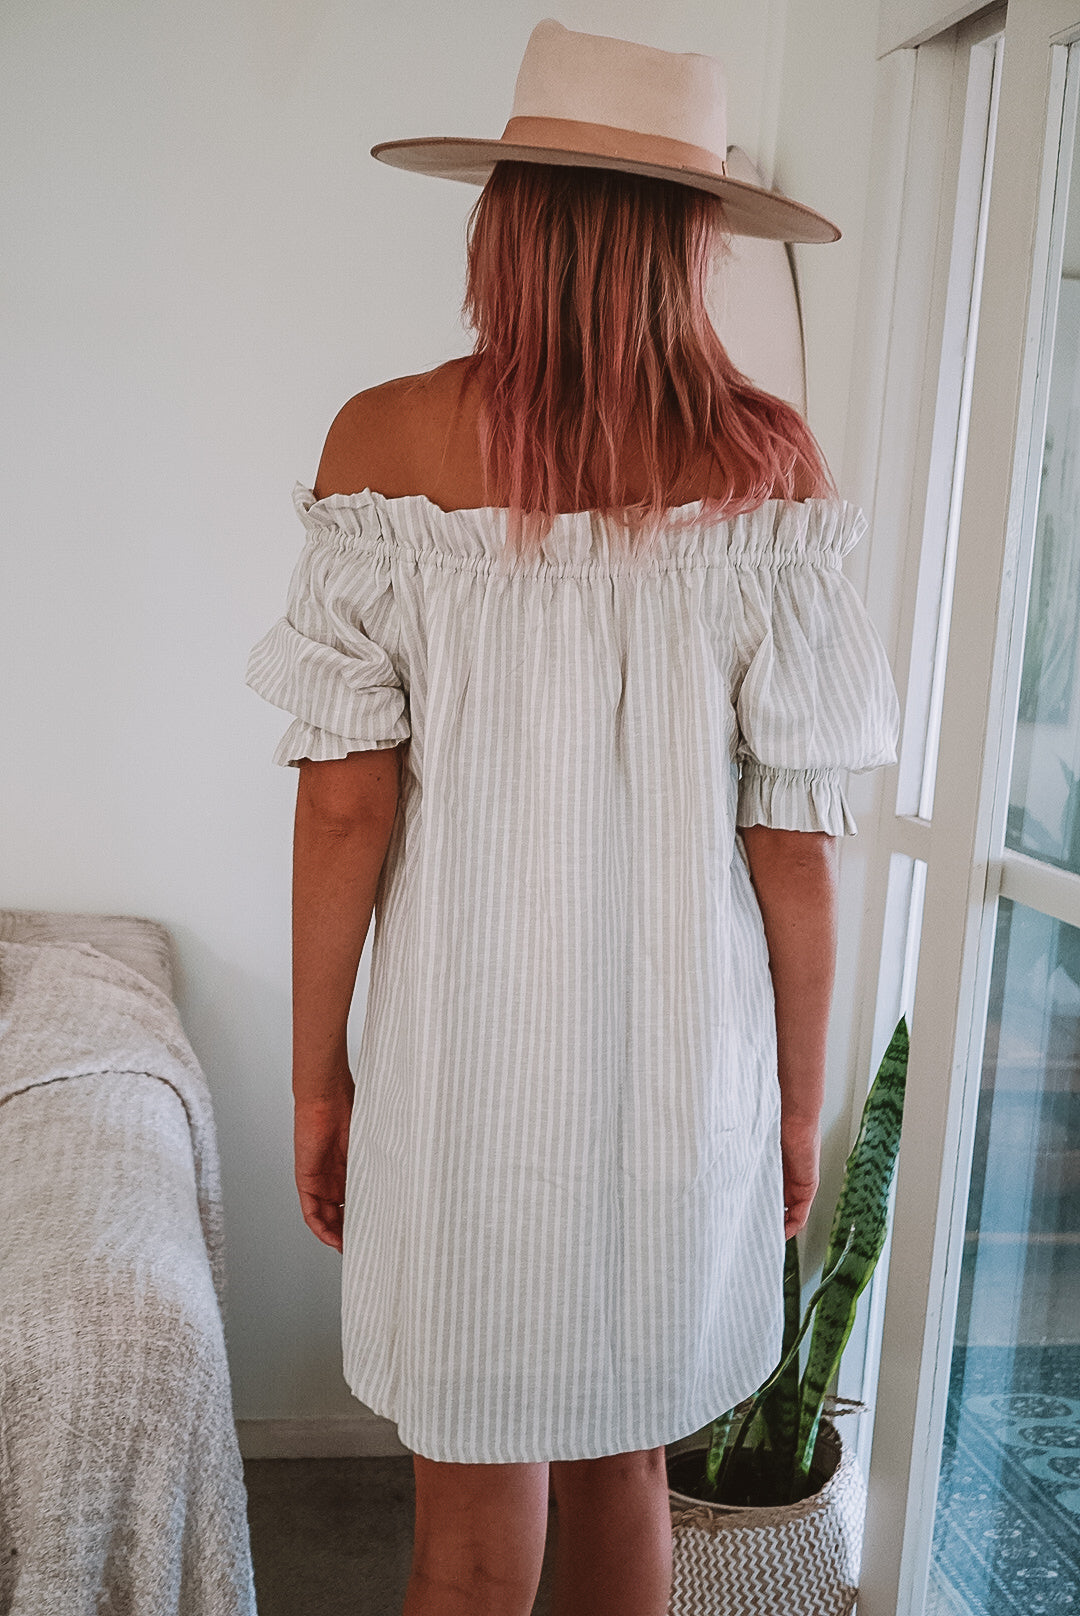 The Winnie Dress in Nude Sailor Stripe